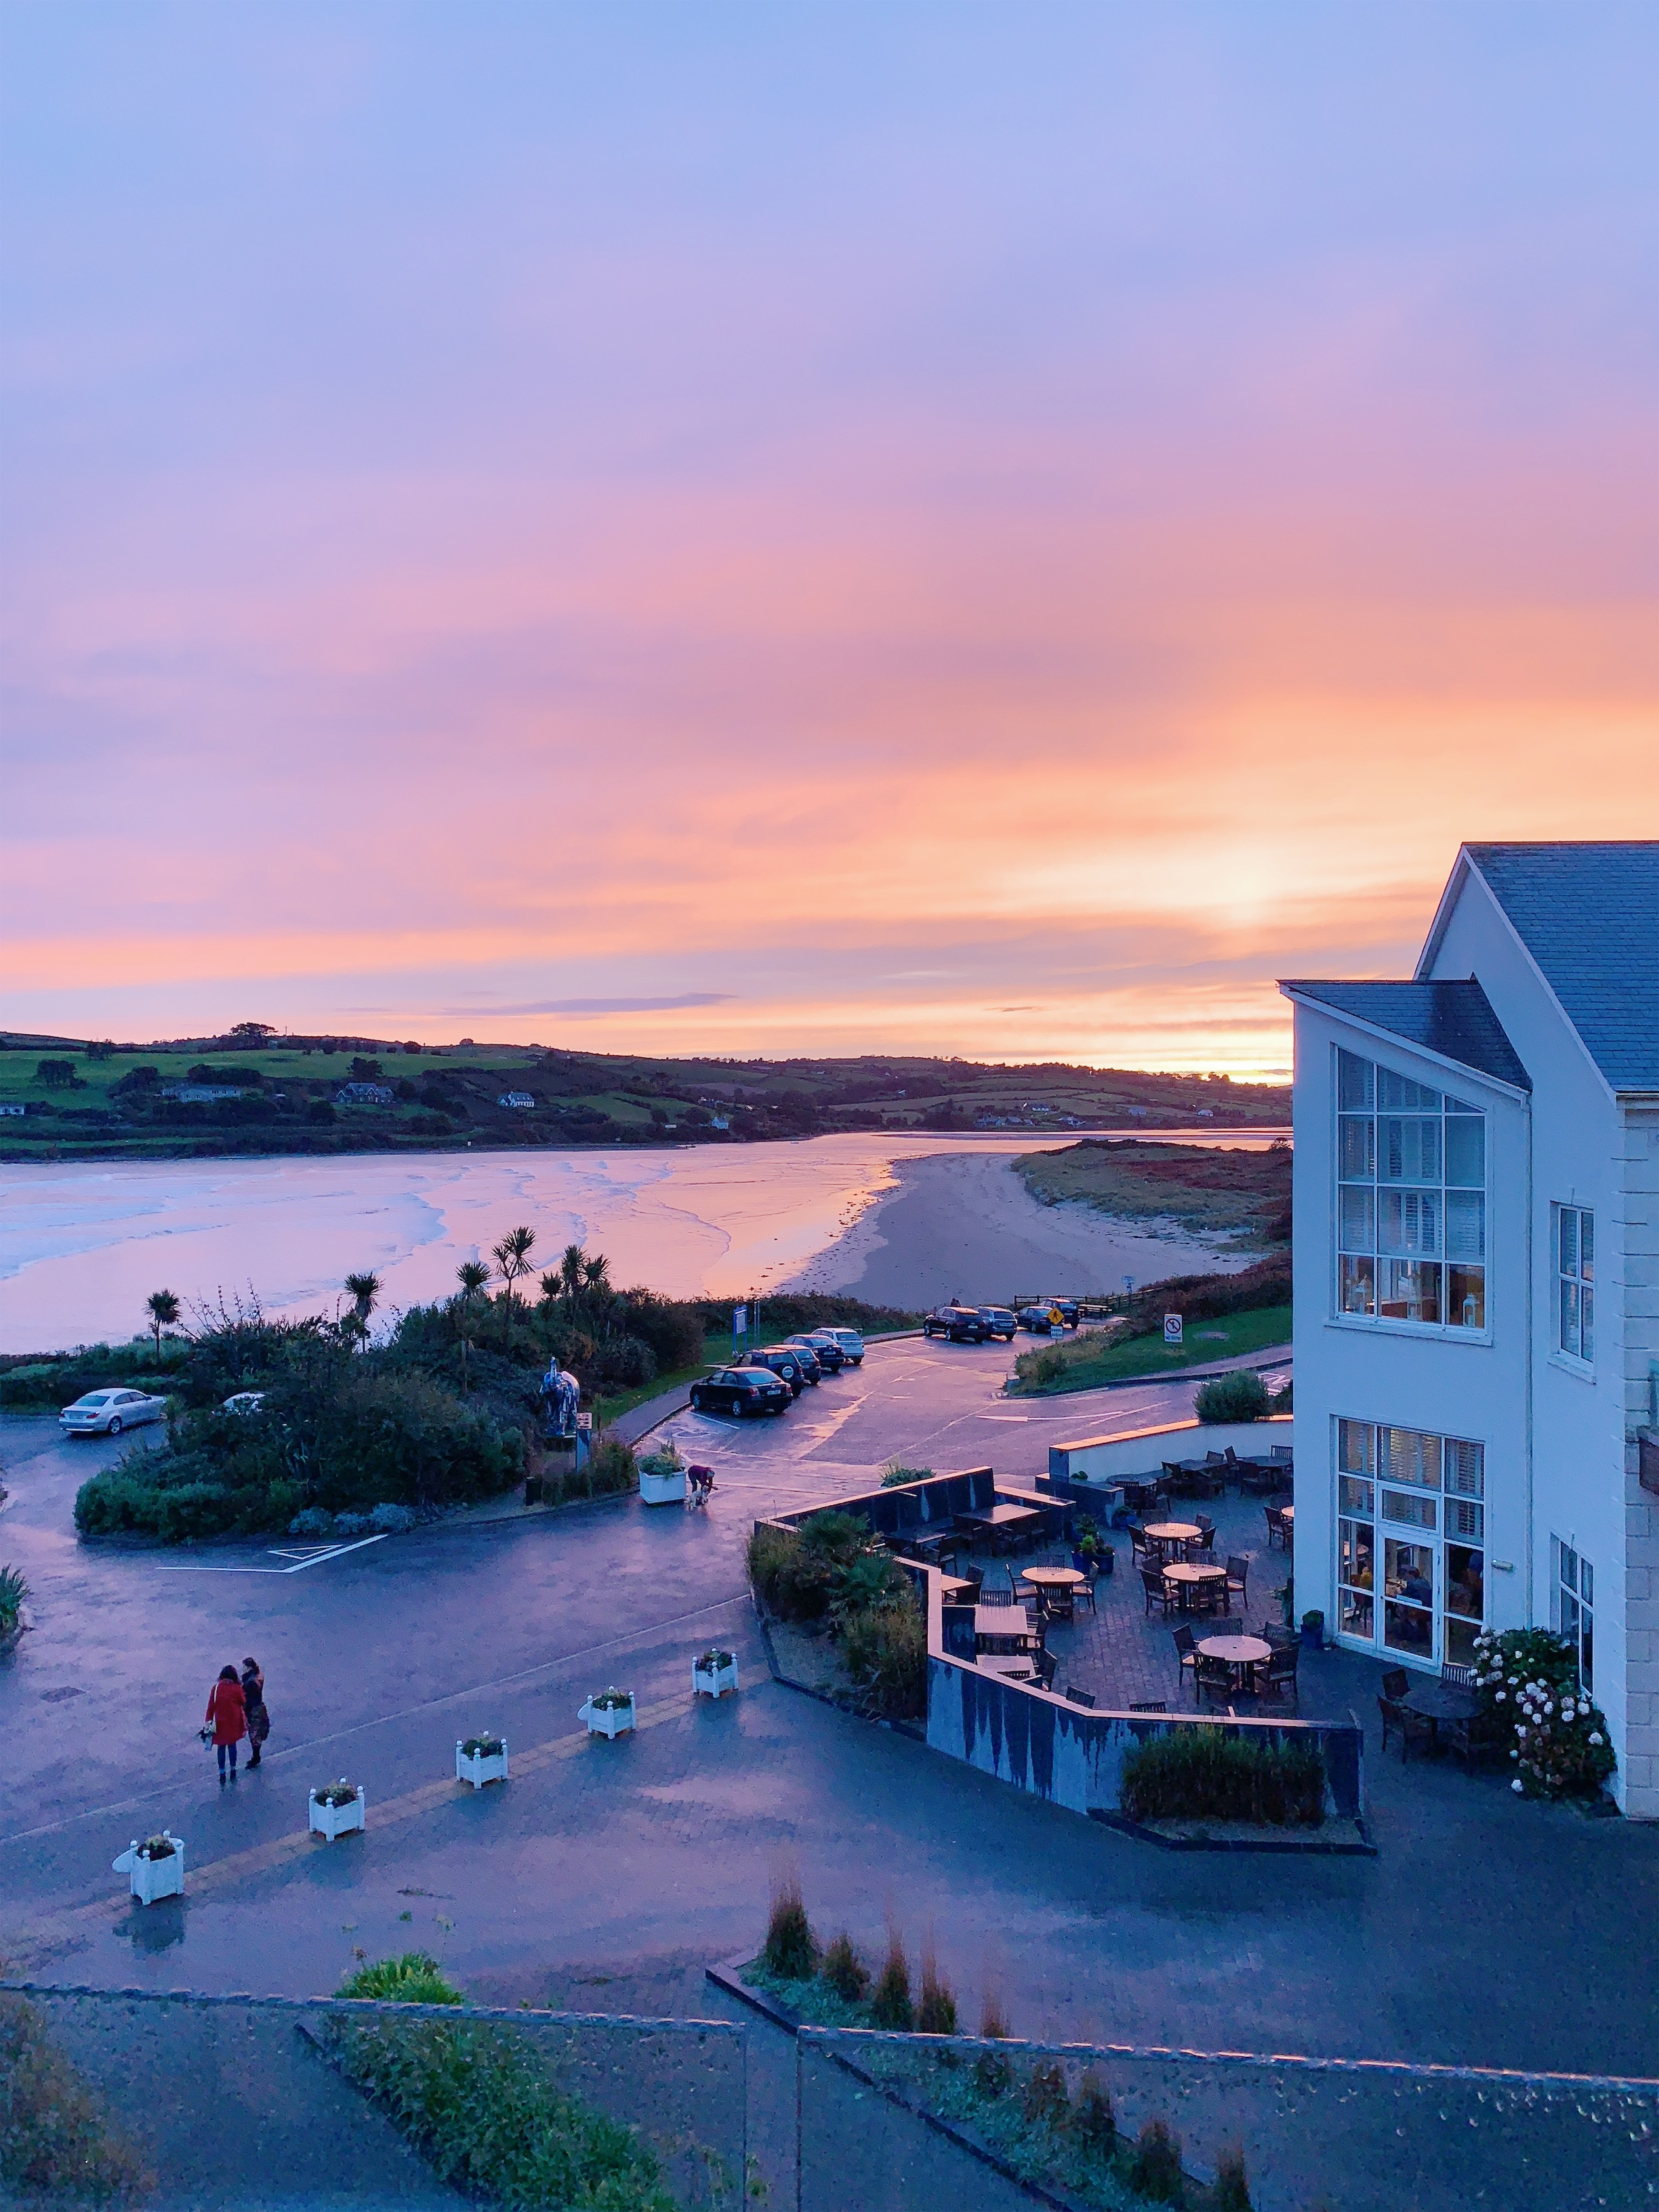 Inchydoney hotel and spa, Holly White, Review